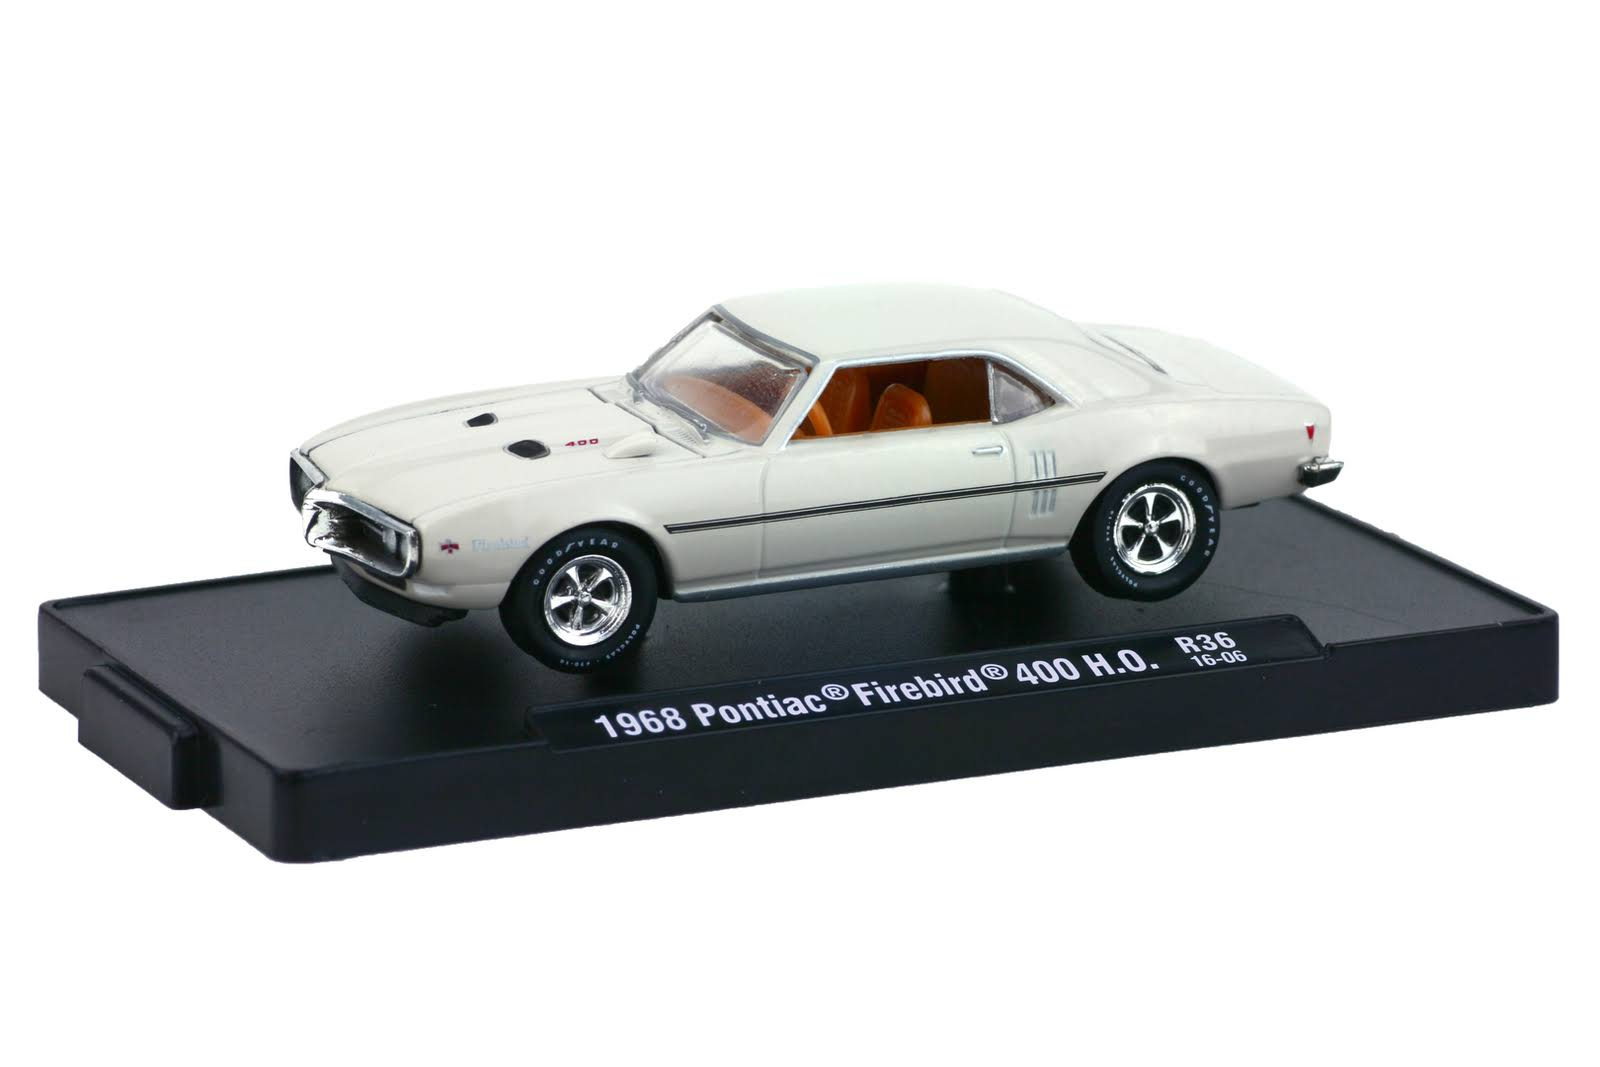 M2 Machines 1:64 Scale Drivers, Colors/Styles Vary